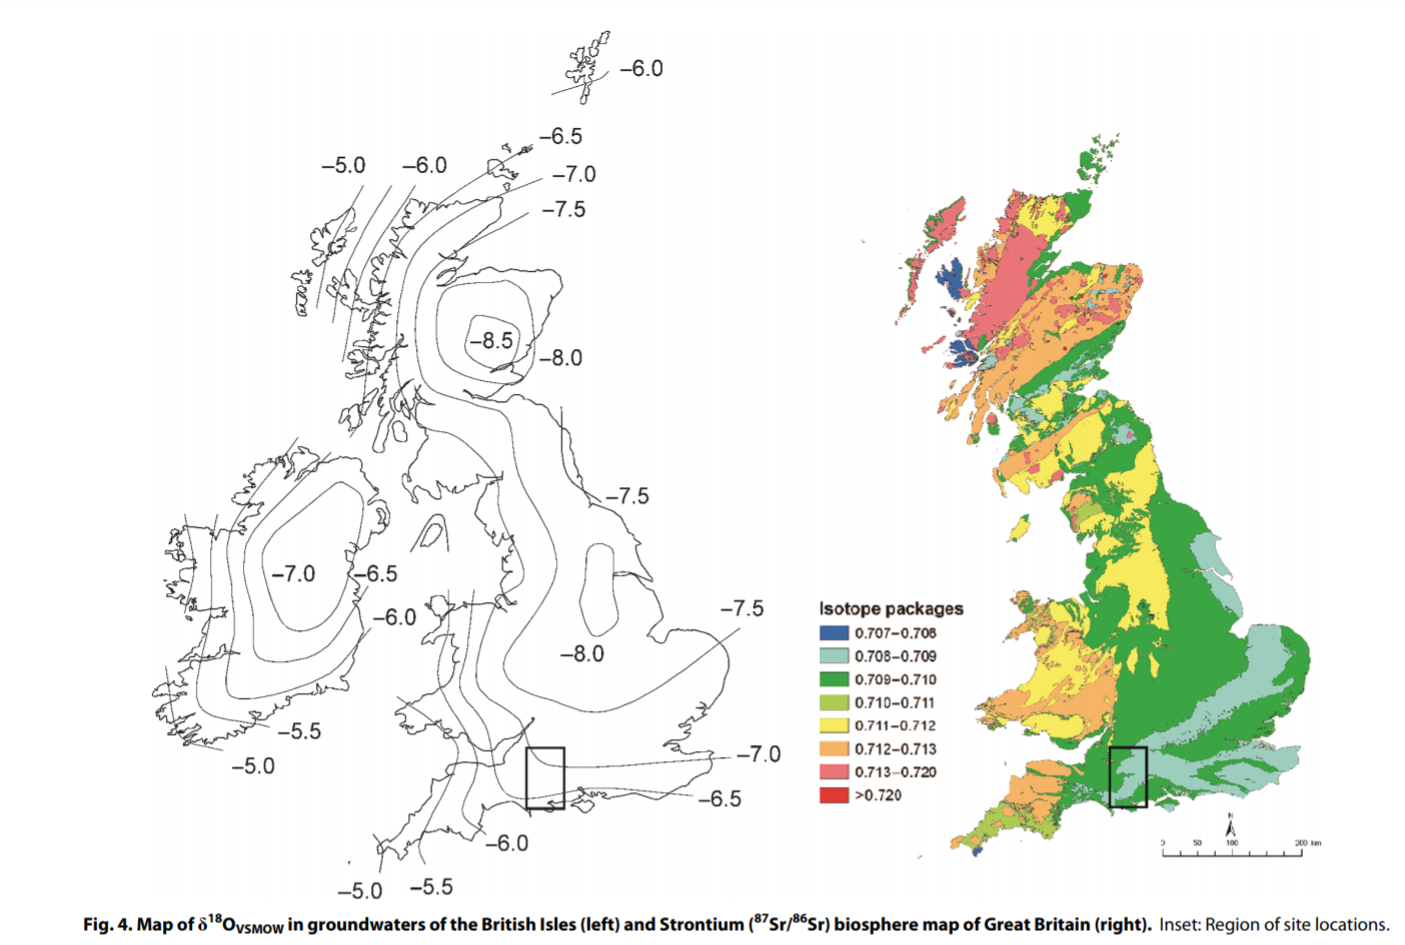 On the left, a map of oxygen isotope ratios in groundwater of the British Isles; on the right, a map of strontium-87/strontium-86 isotope ratios in Britain.